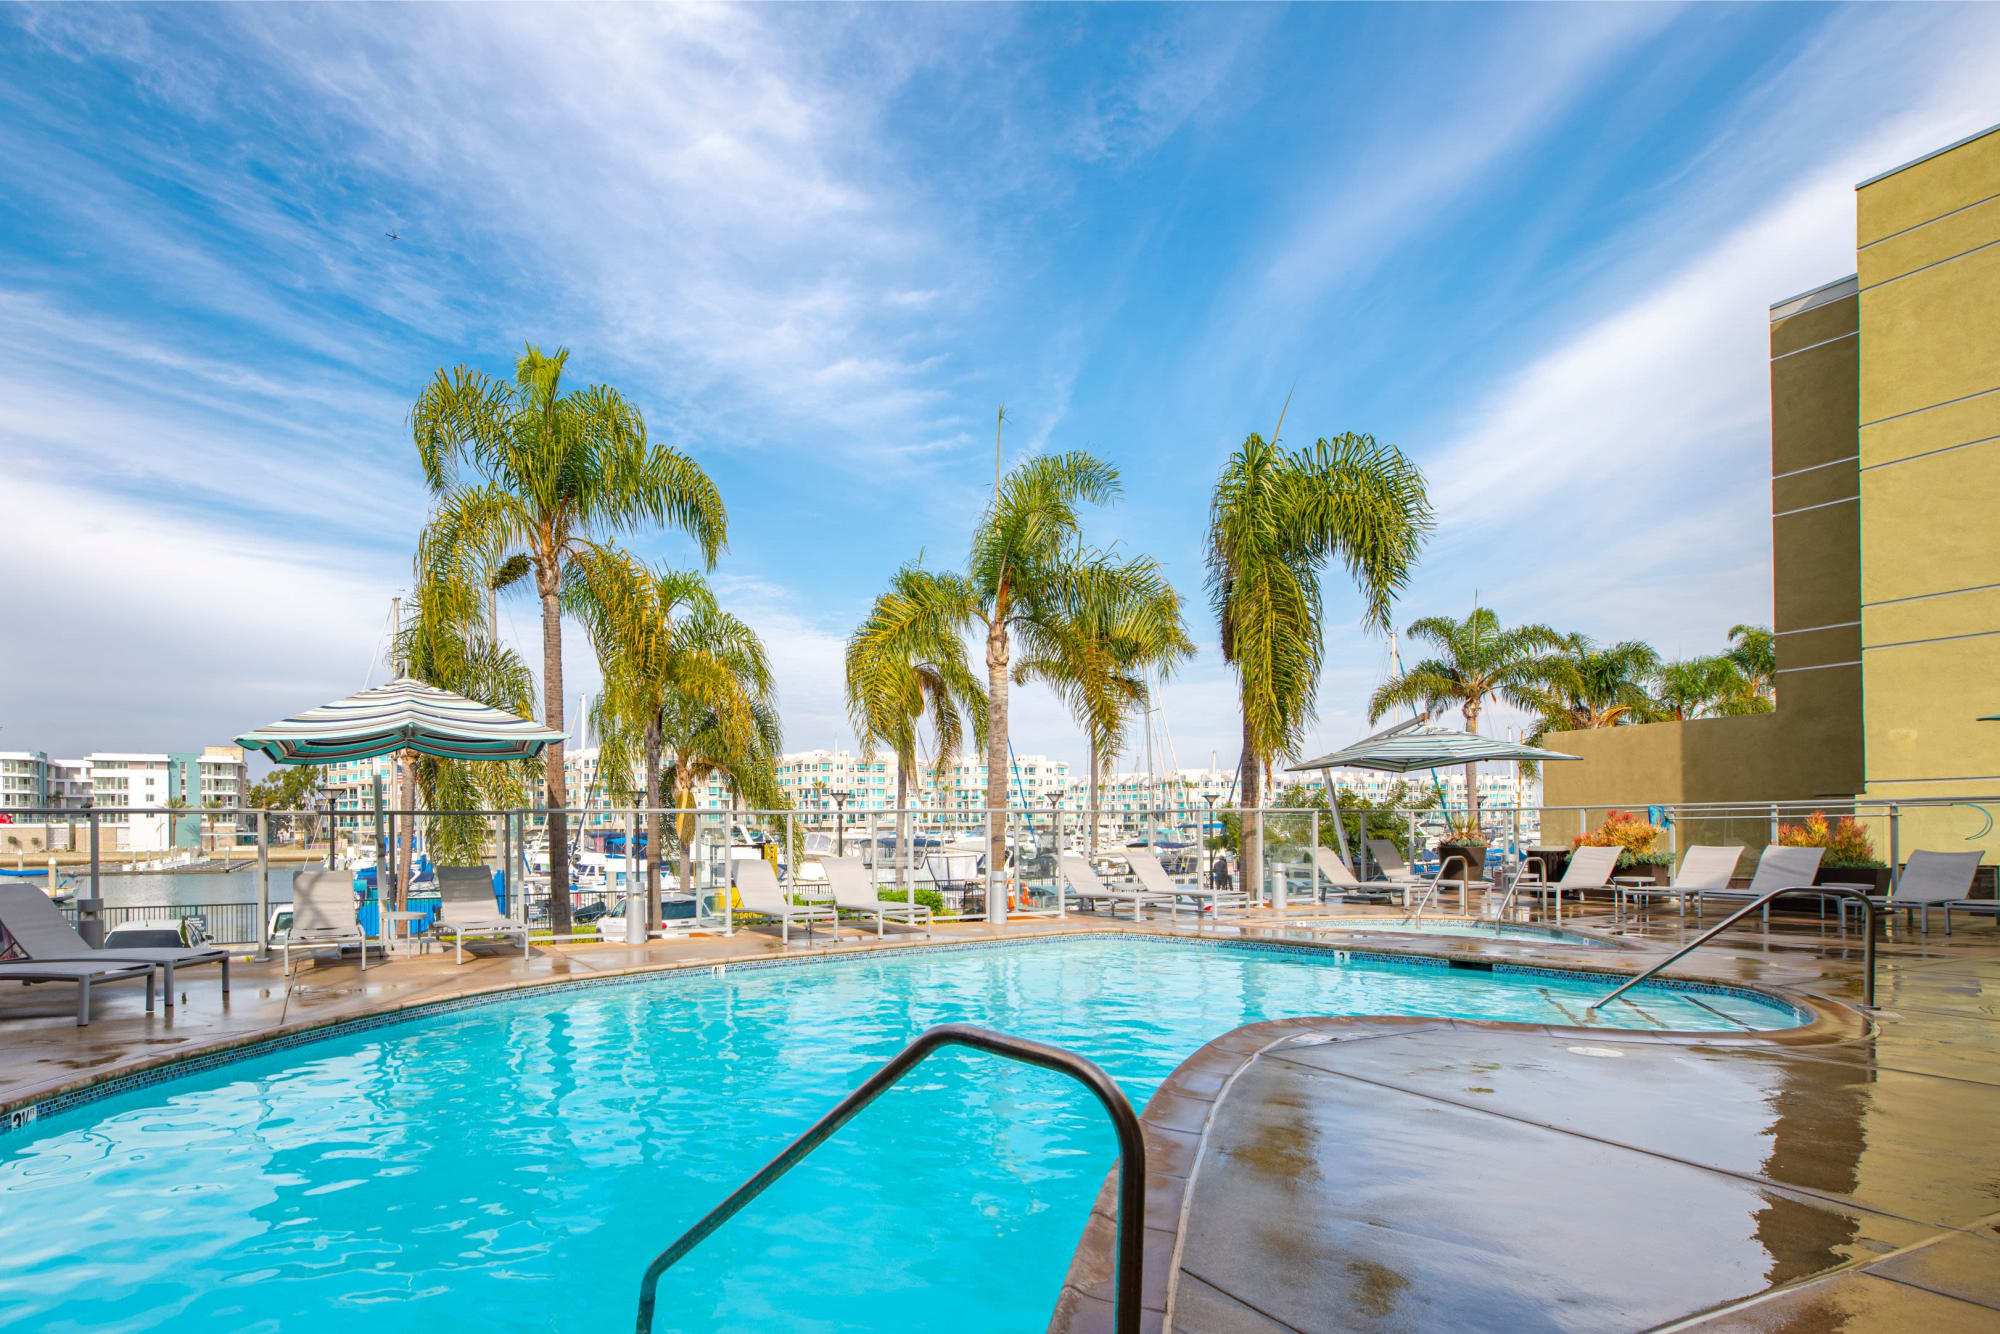 The pool and palm trees on a beautiful day at Harborside Marina Bay Apartments in Marina del Rey, California